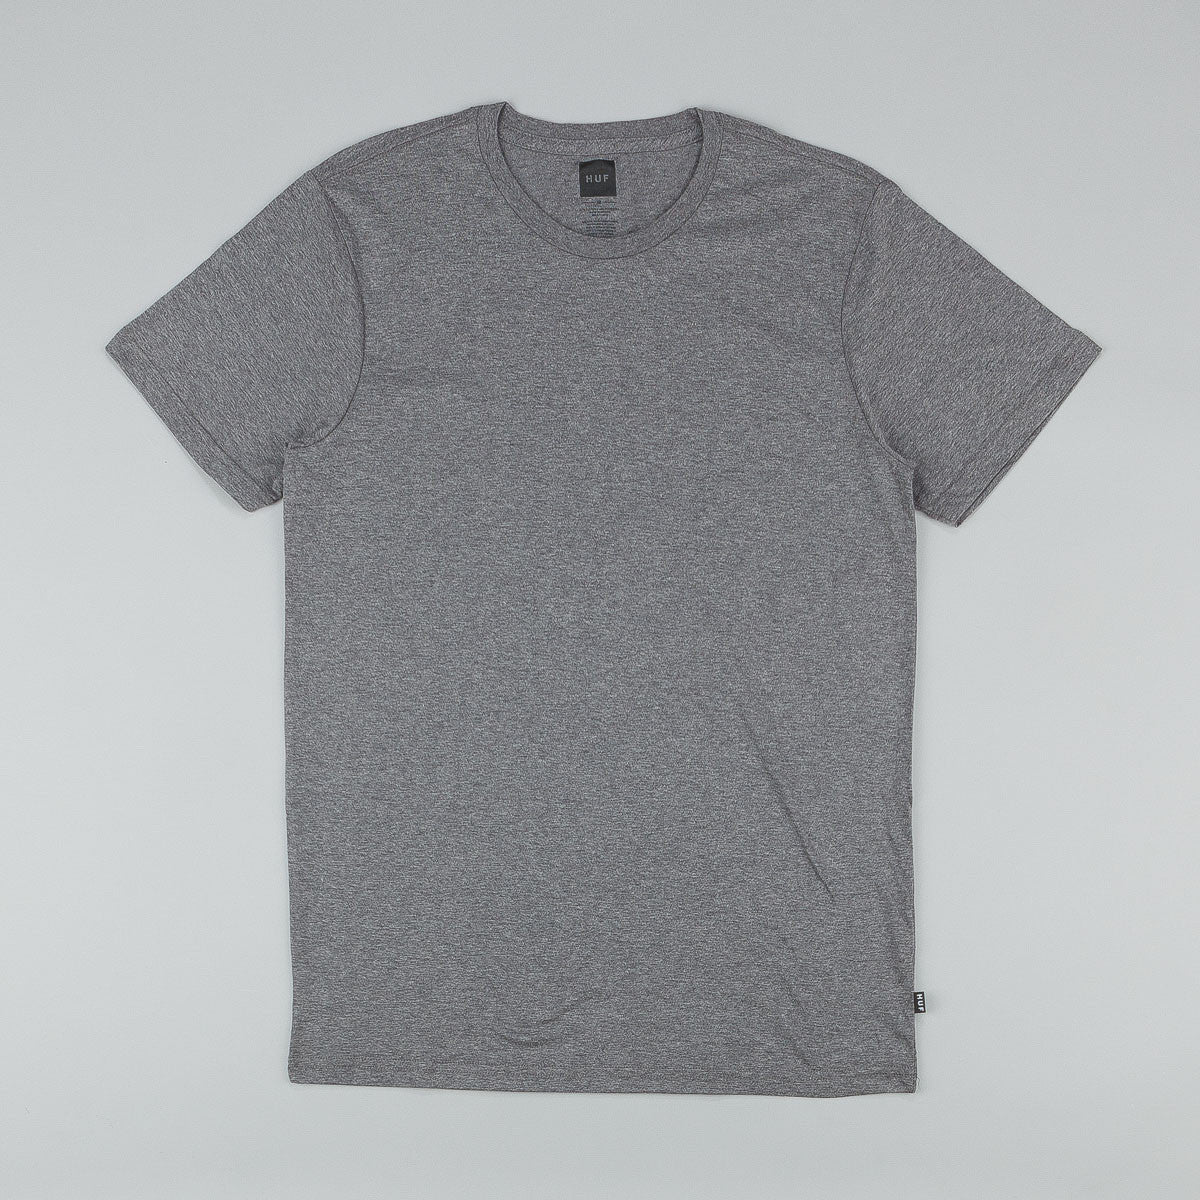 HUF - 3 T Shirt Pack - Ash Heather / Black / White